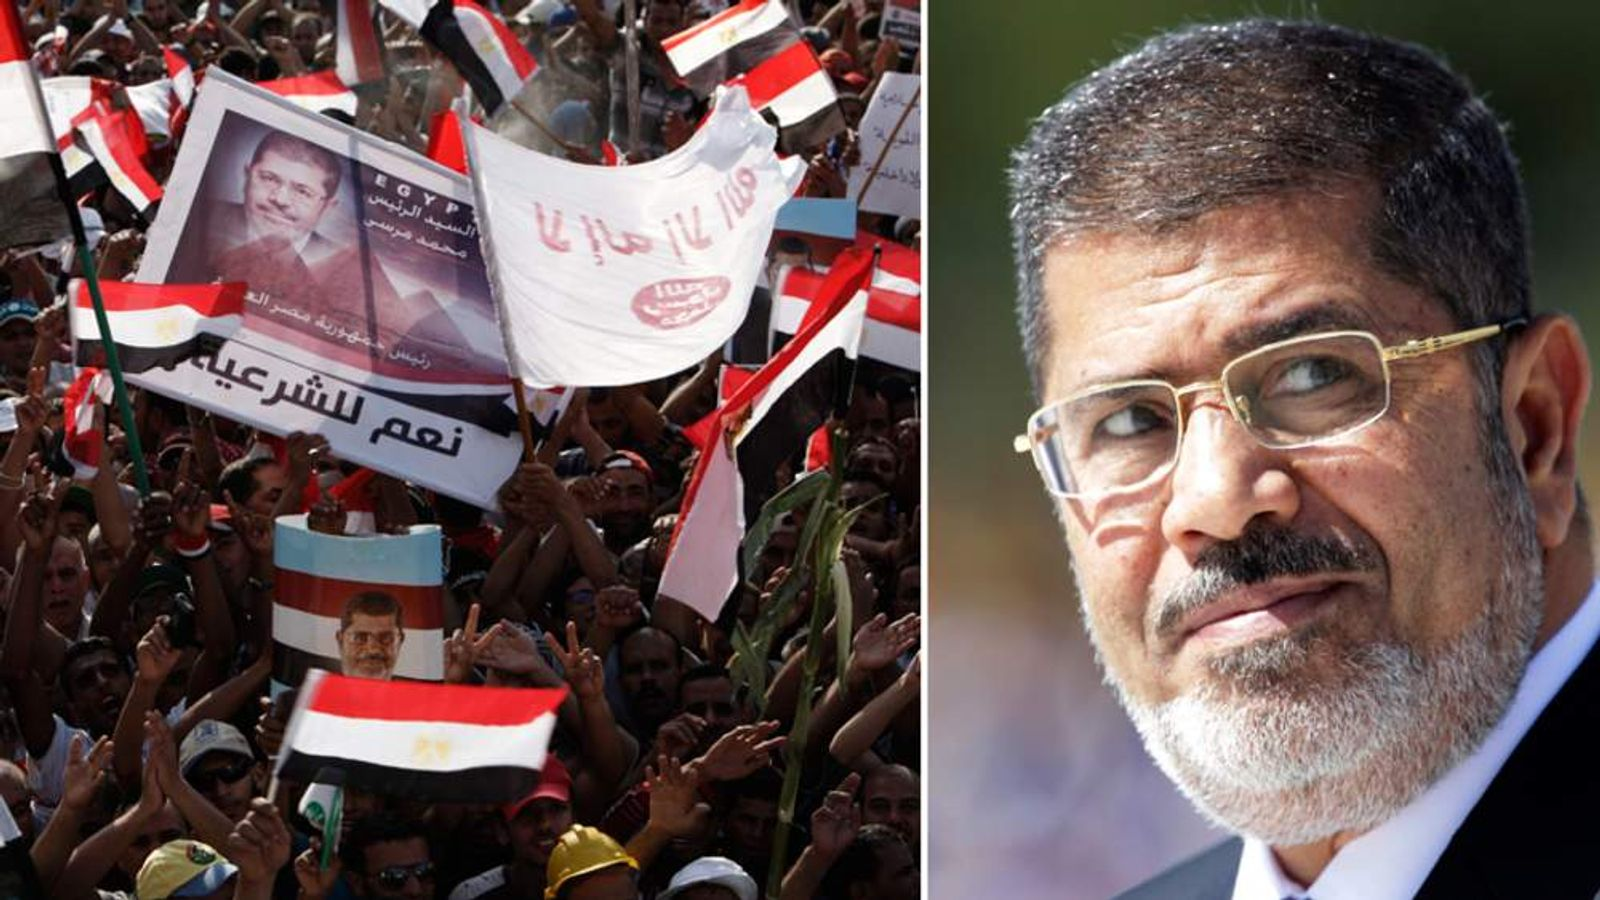 Mohamed Morsi and protesters in Cairo